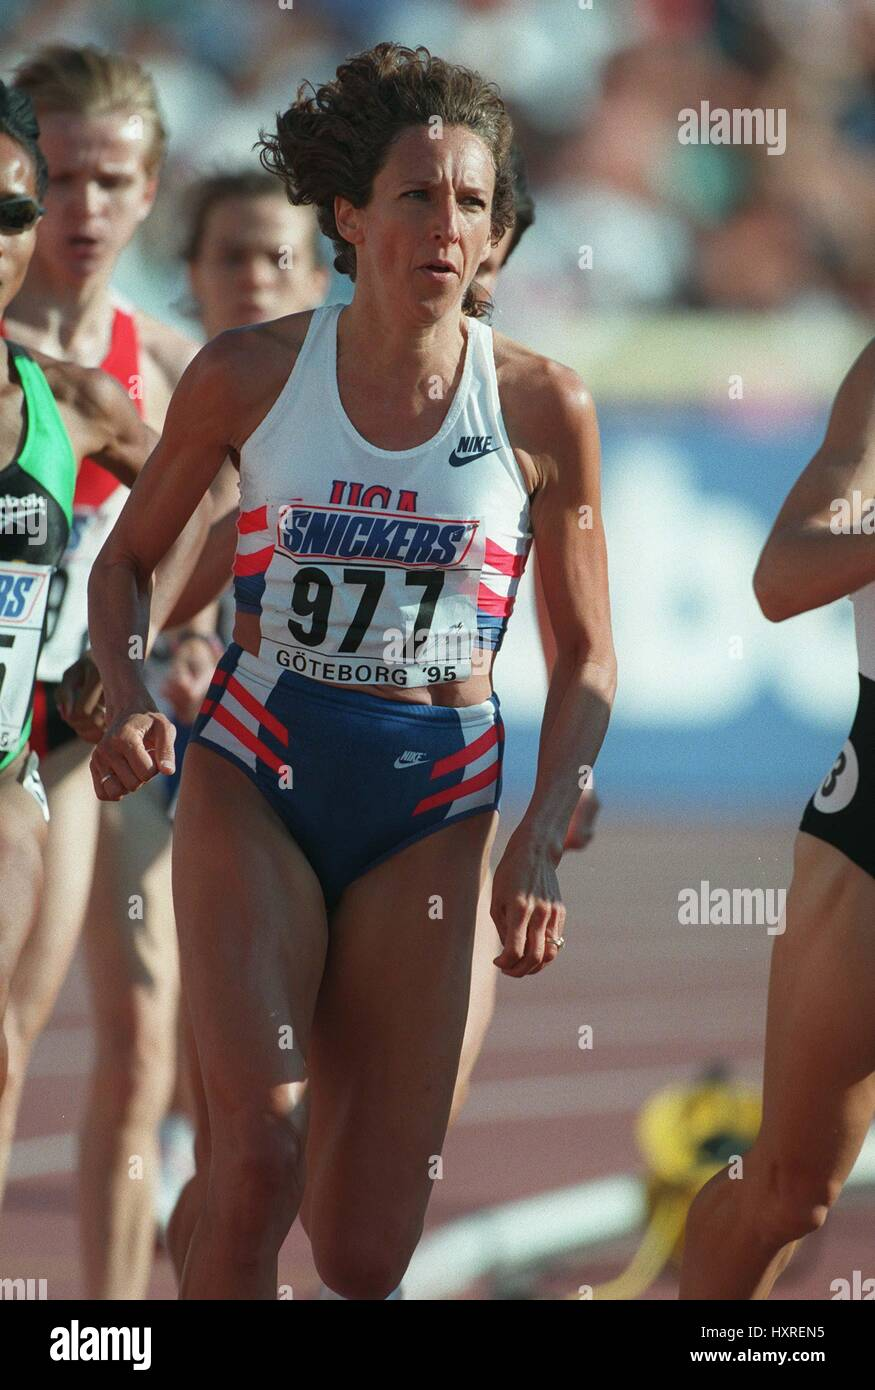 RUTH WYSOCKI 1500 METRES 08 August 1995 - Stock Image